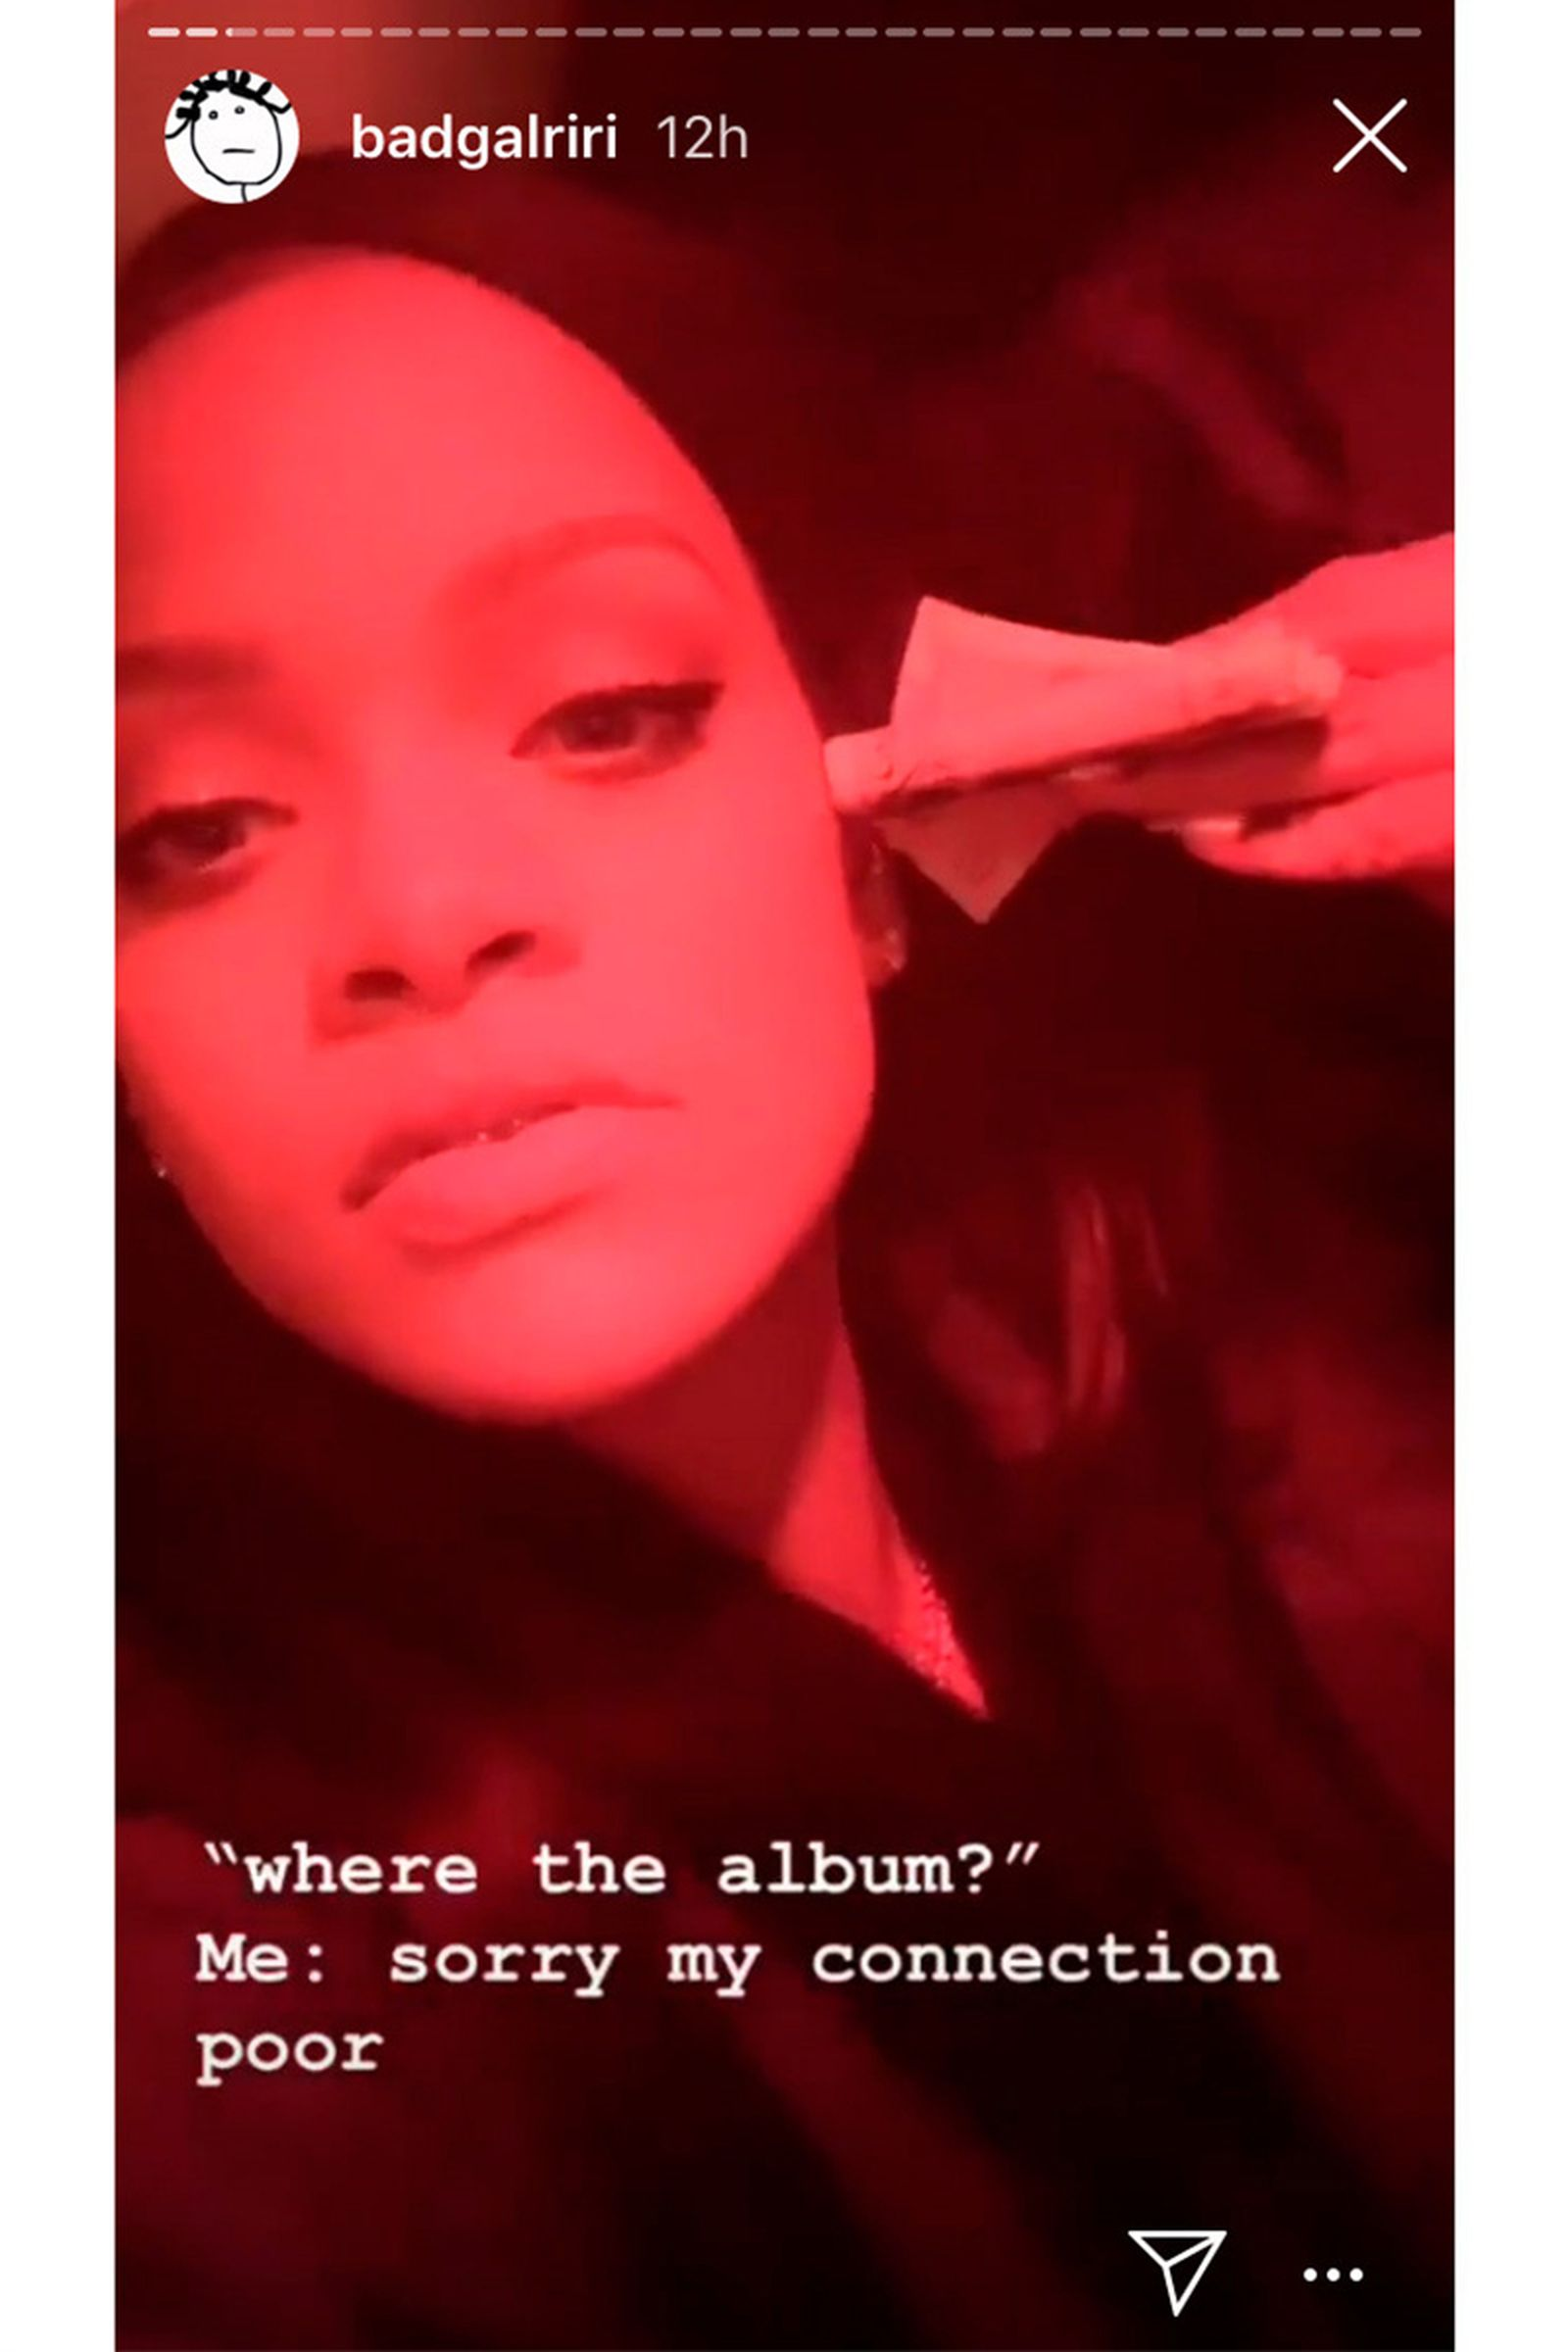 rihanna album release date 2019 Fenty Beauty Savage x Fenty anti